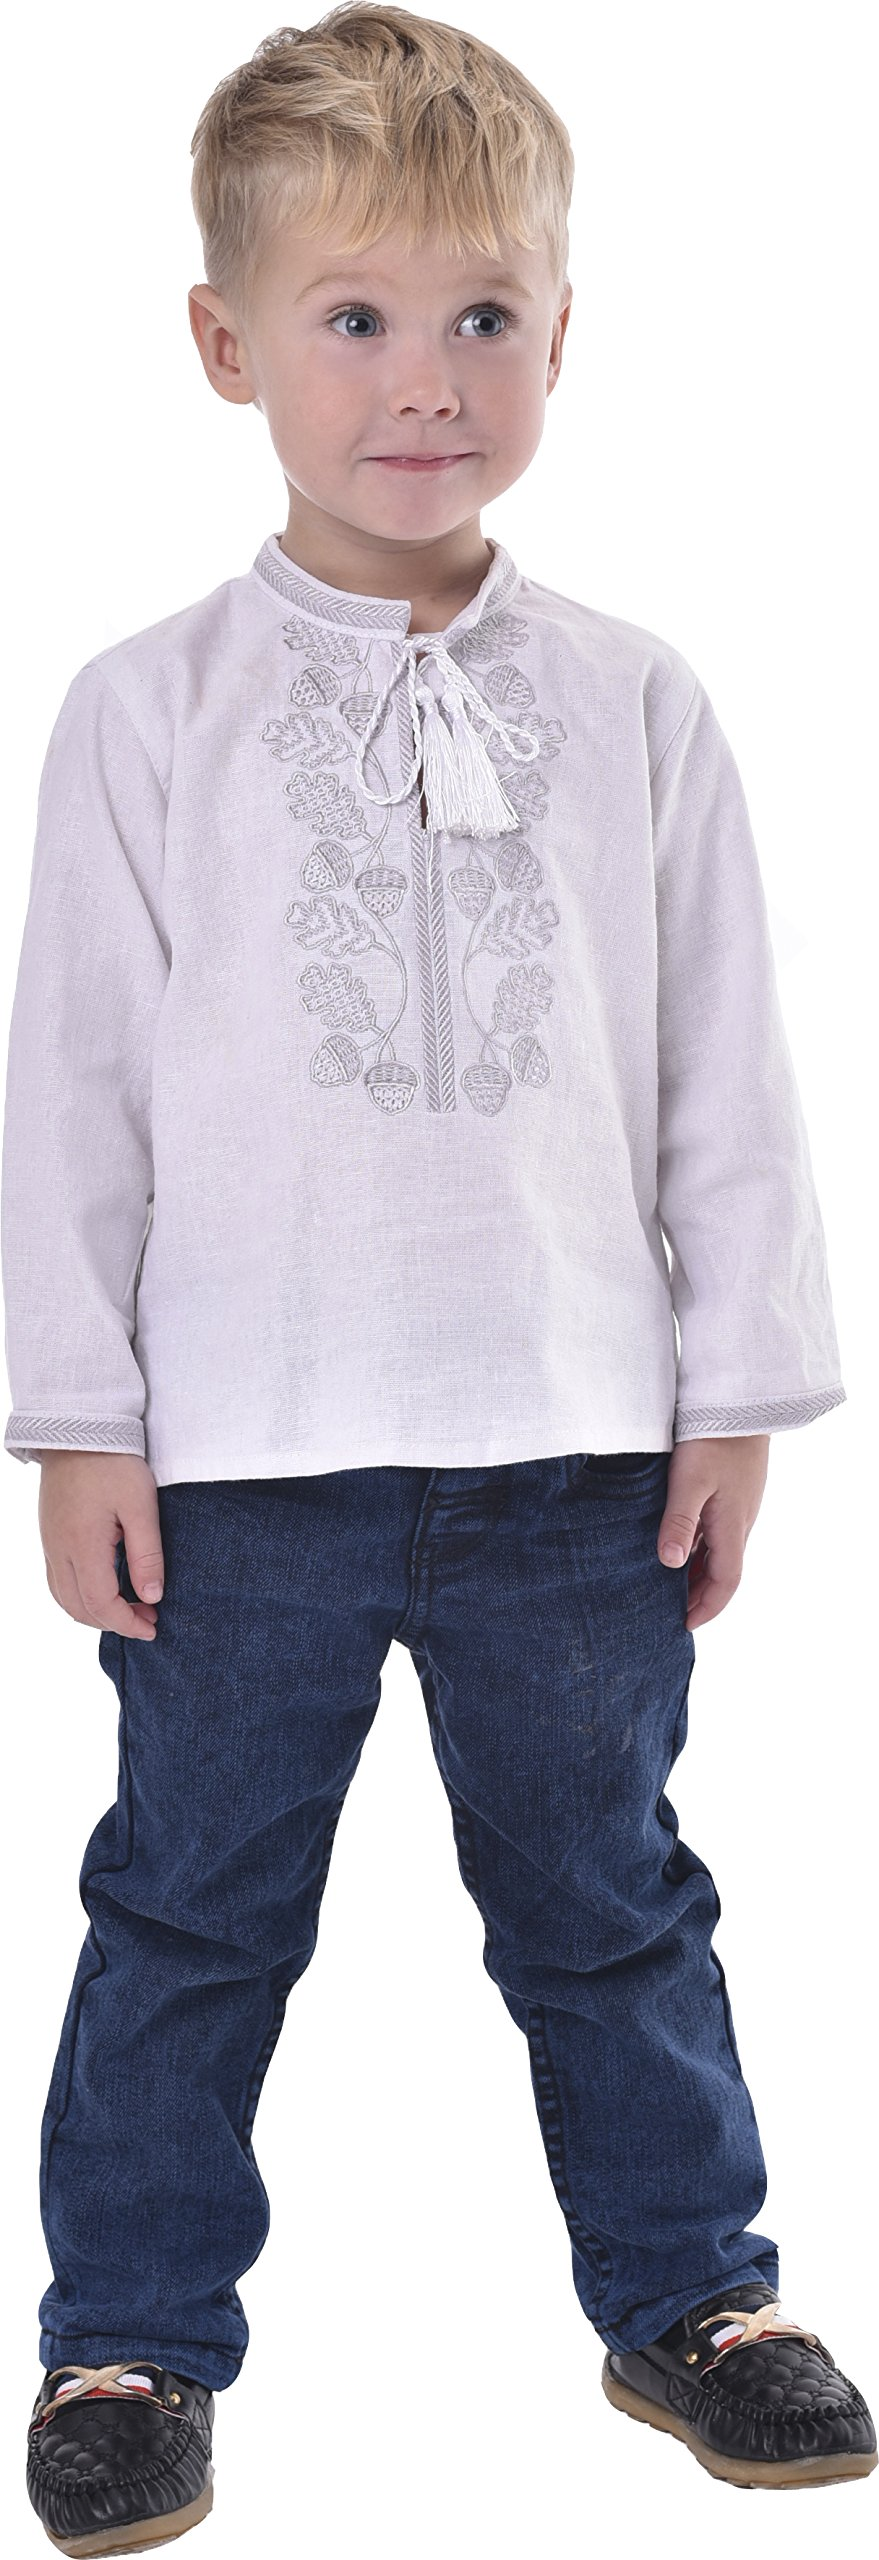 Boys Shirts With Embroidery. Ukrainian Vyshyvanka. Children's Traditional Ukrainian Shirts With Collar For Boys. (2-2.5 Years)